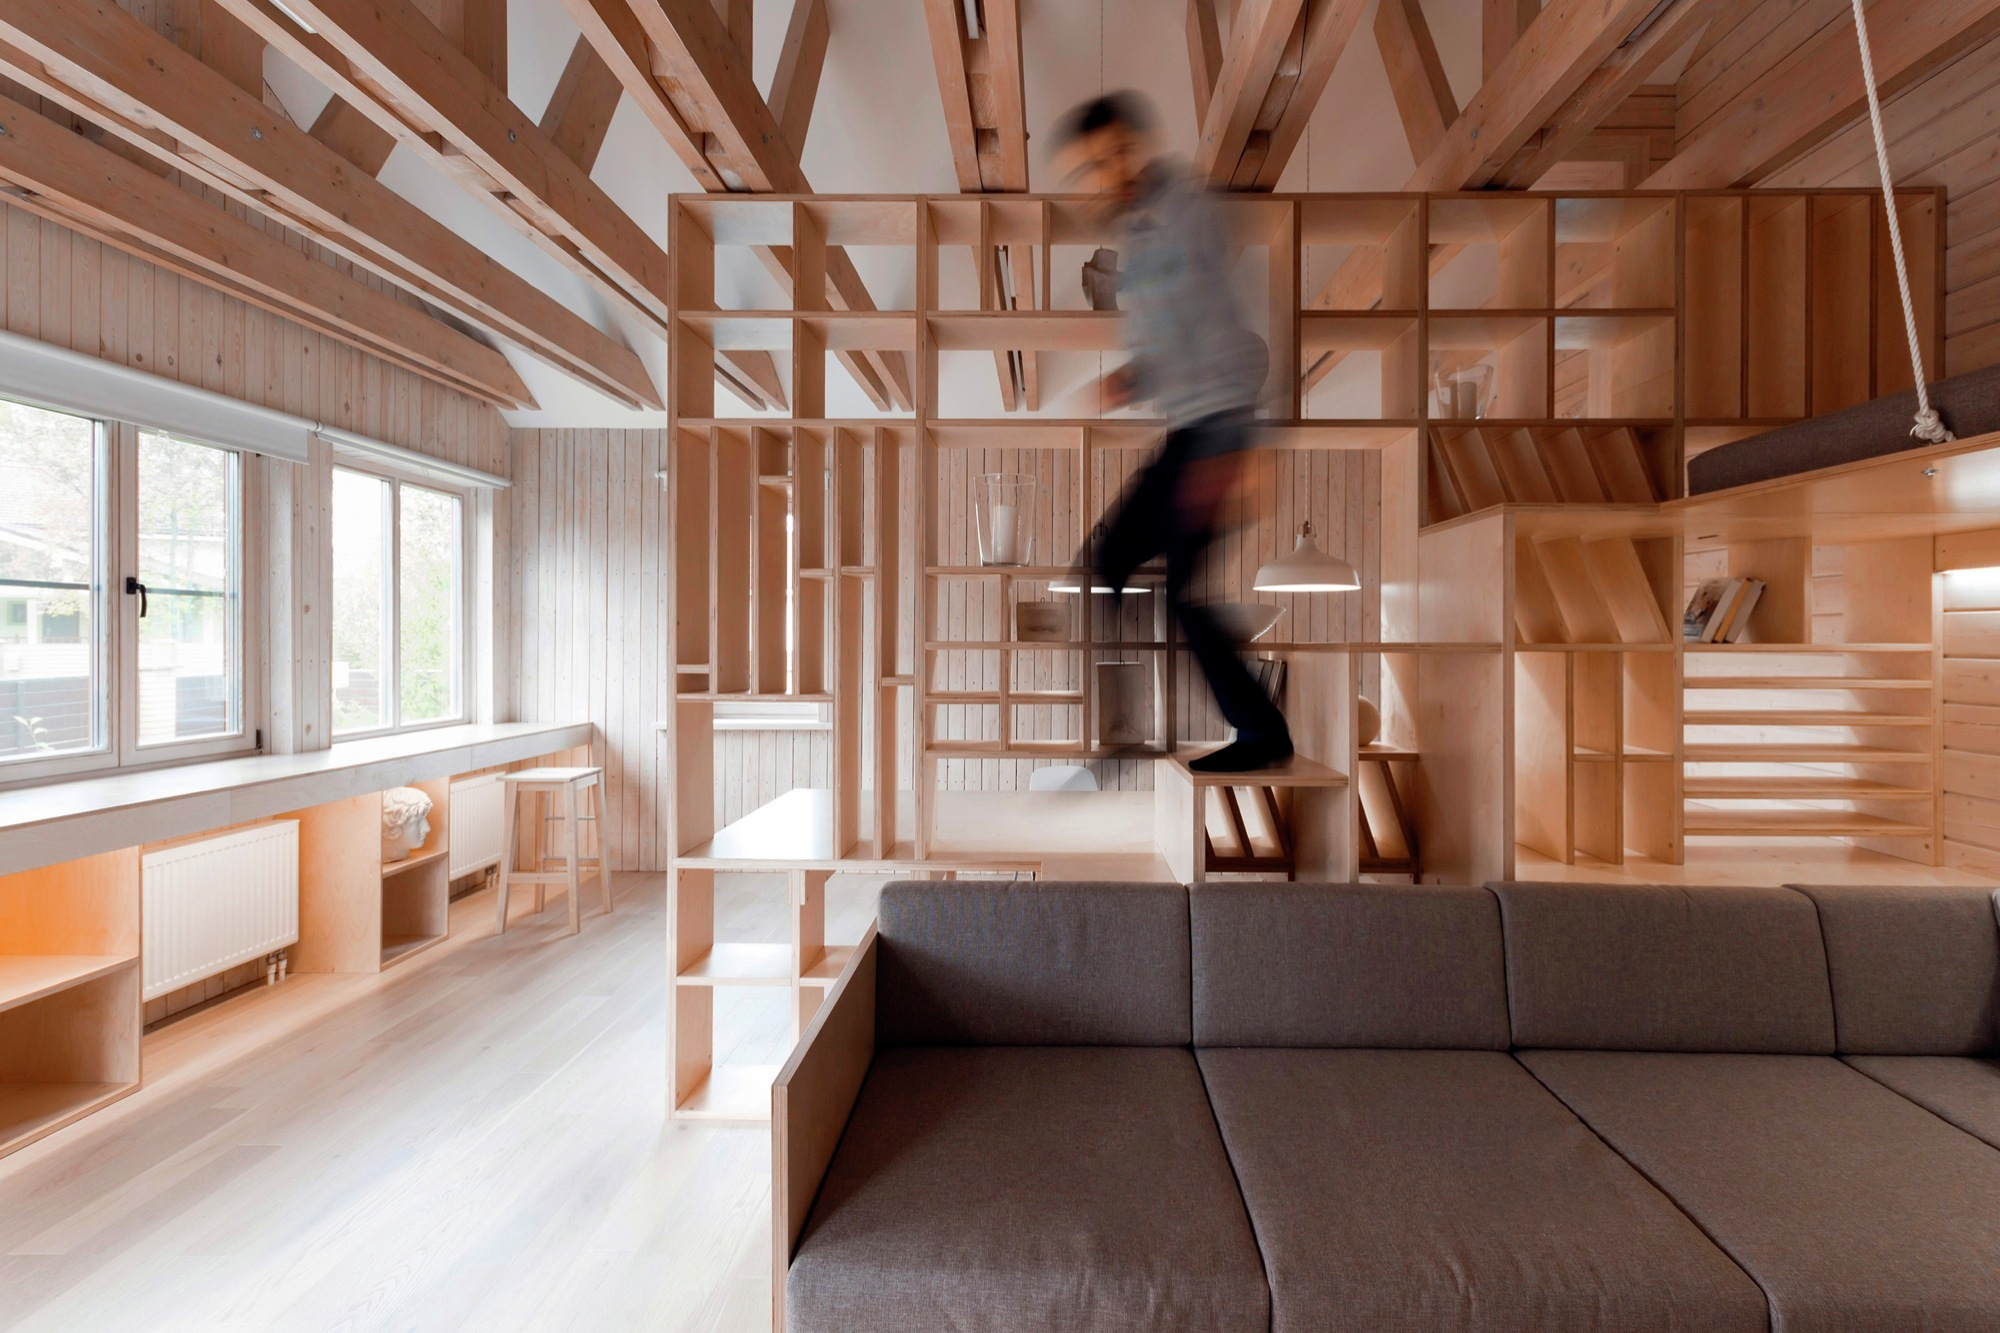 Architect S Workshop Ruetemple Archdaily